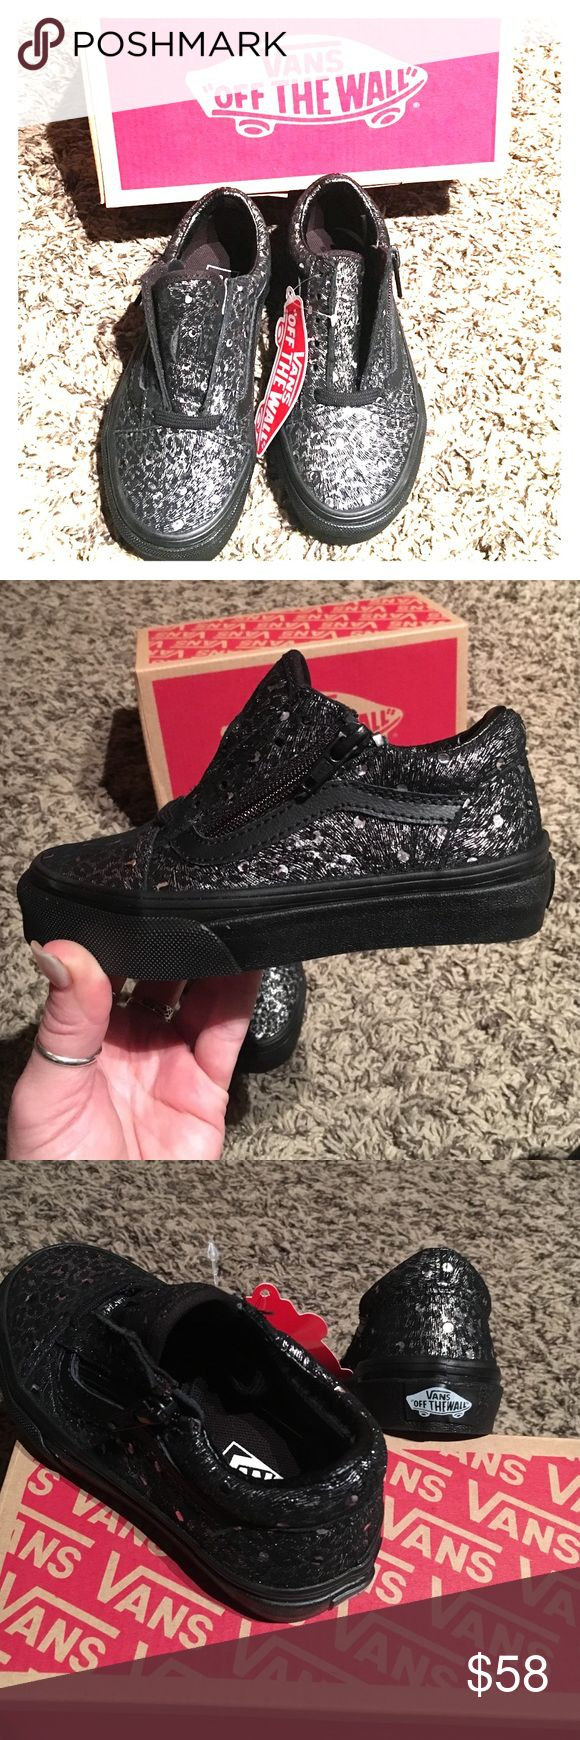 NWT Old School Zip Metallic Leopard Vans Toddler girls 10.5 SUPER RARE!' Absolutely adorable!Metallic zip Leopard Black Vans with Zippers on each side for easy slip on.They haven't even been laced yet.Original box and tags with sticker included.Trade Value 120$ Vans Shoes Sneakers